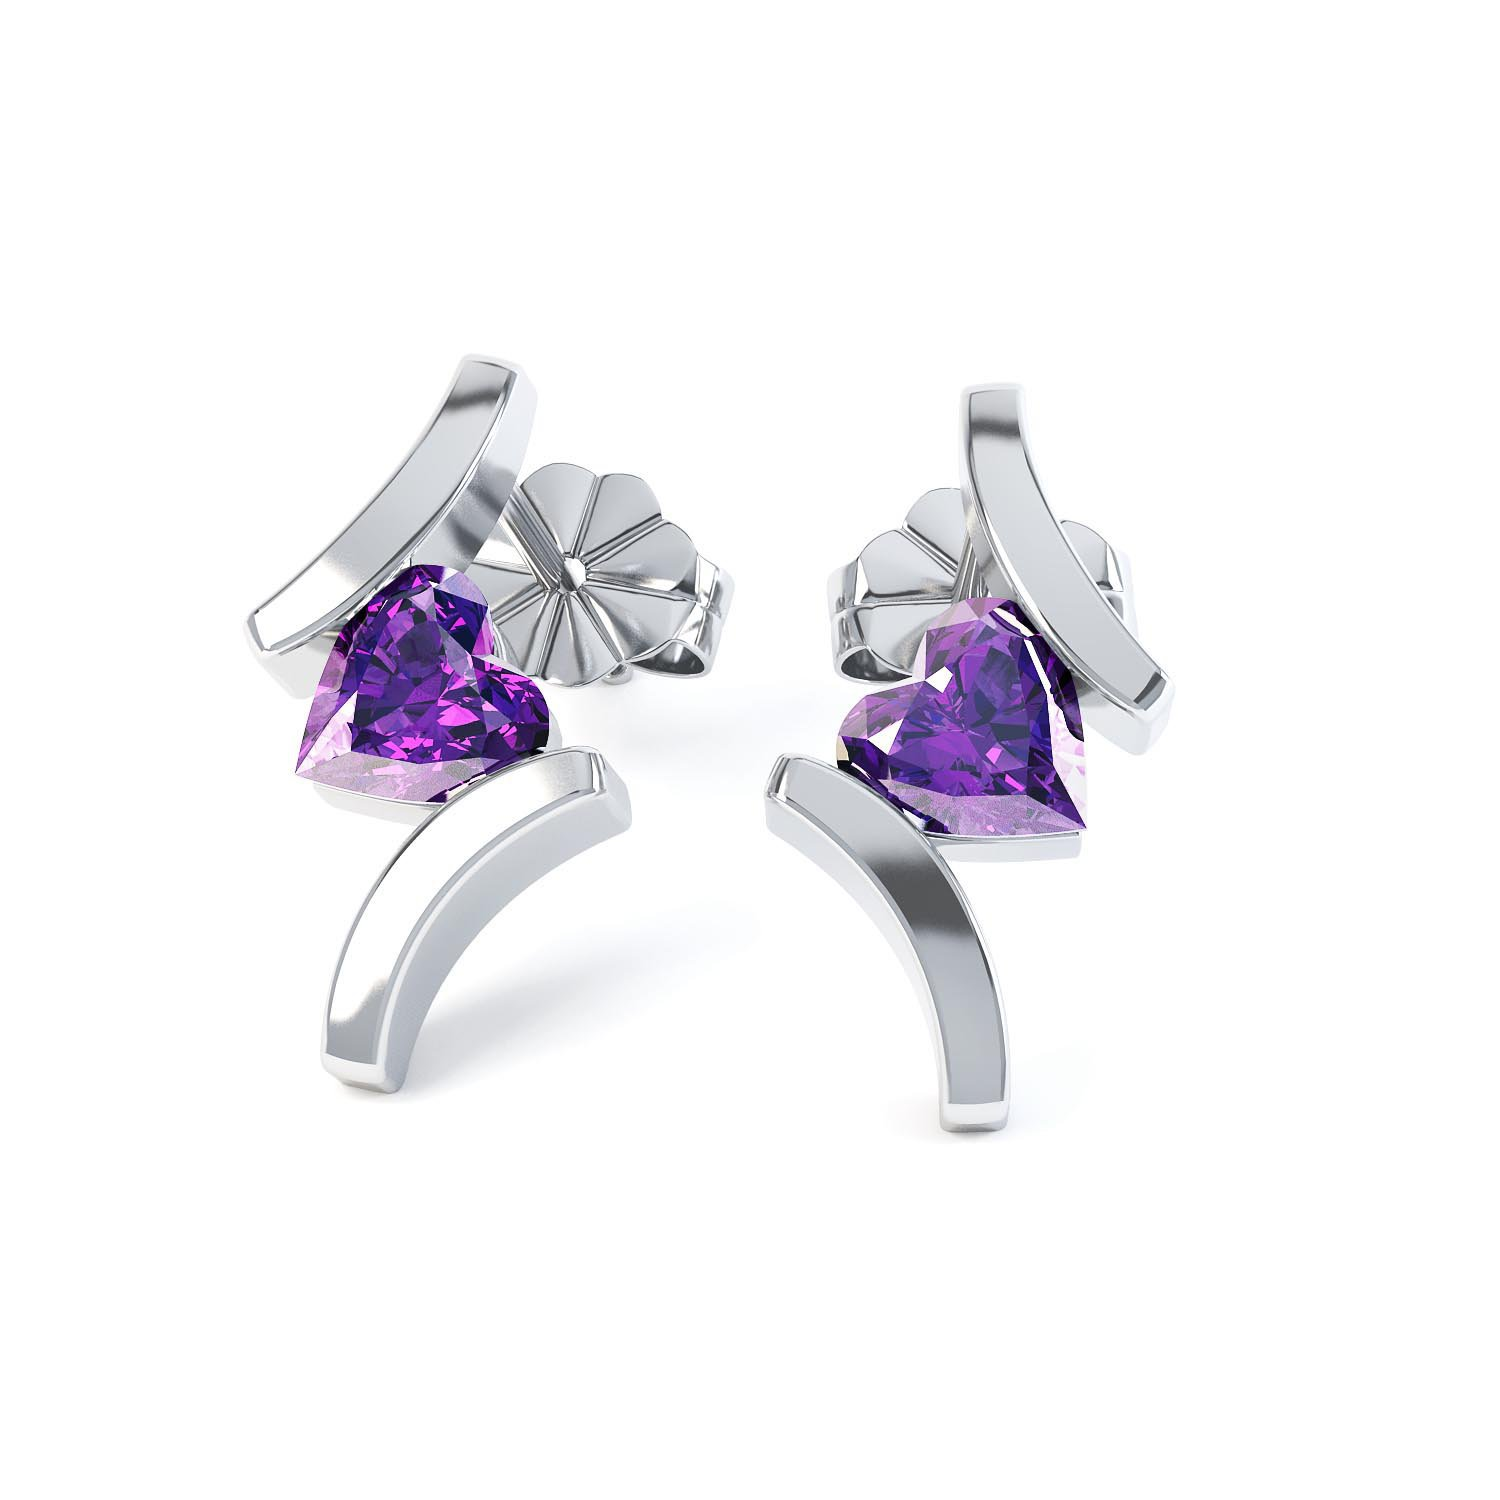 Combinations Amethyst Heart 18ct White Gold Earrings